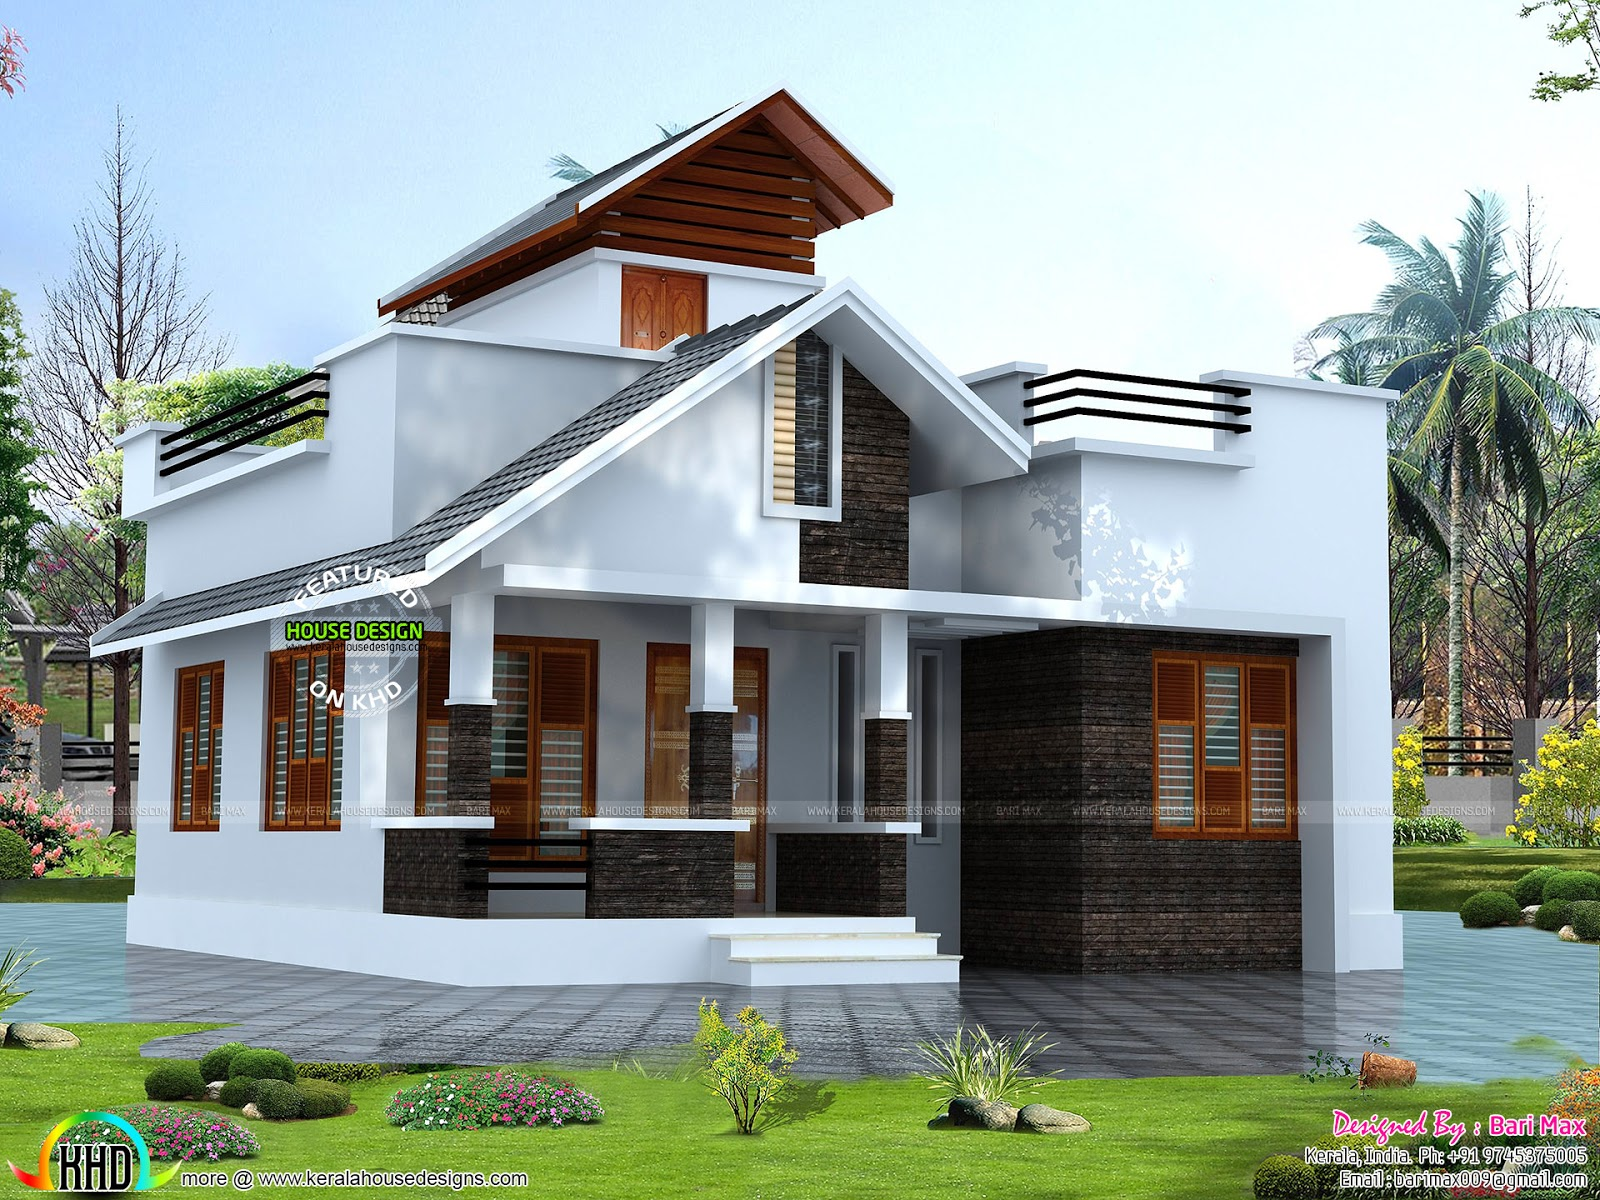 Rs 12 lakh house architecture Kerala home design and floor plans